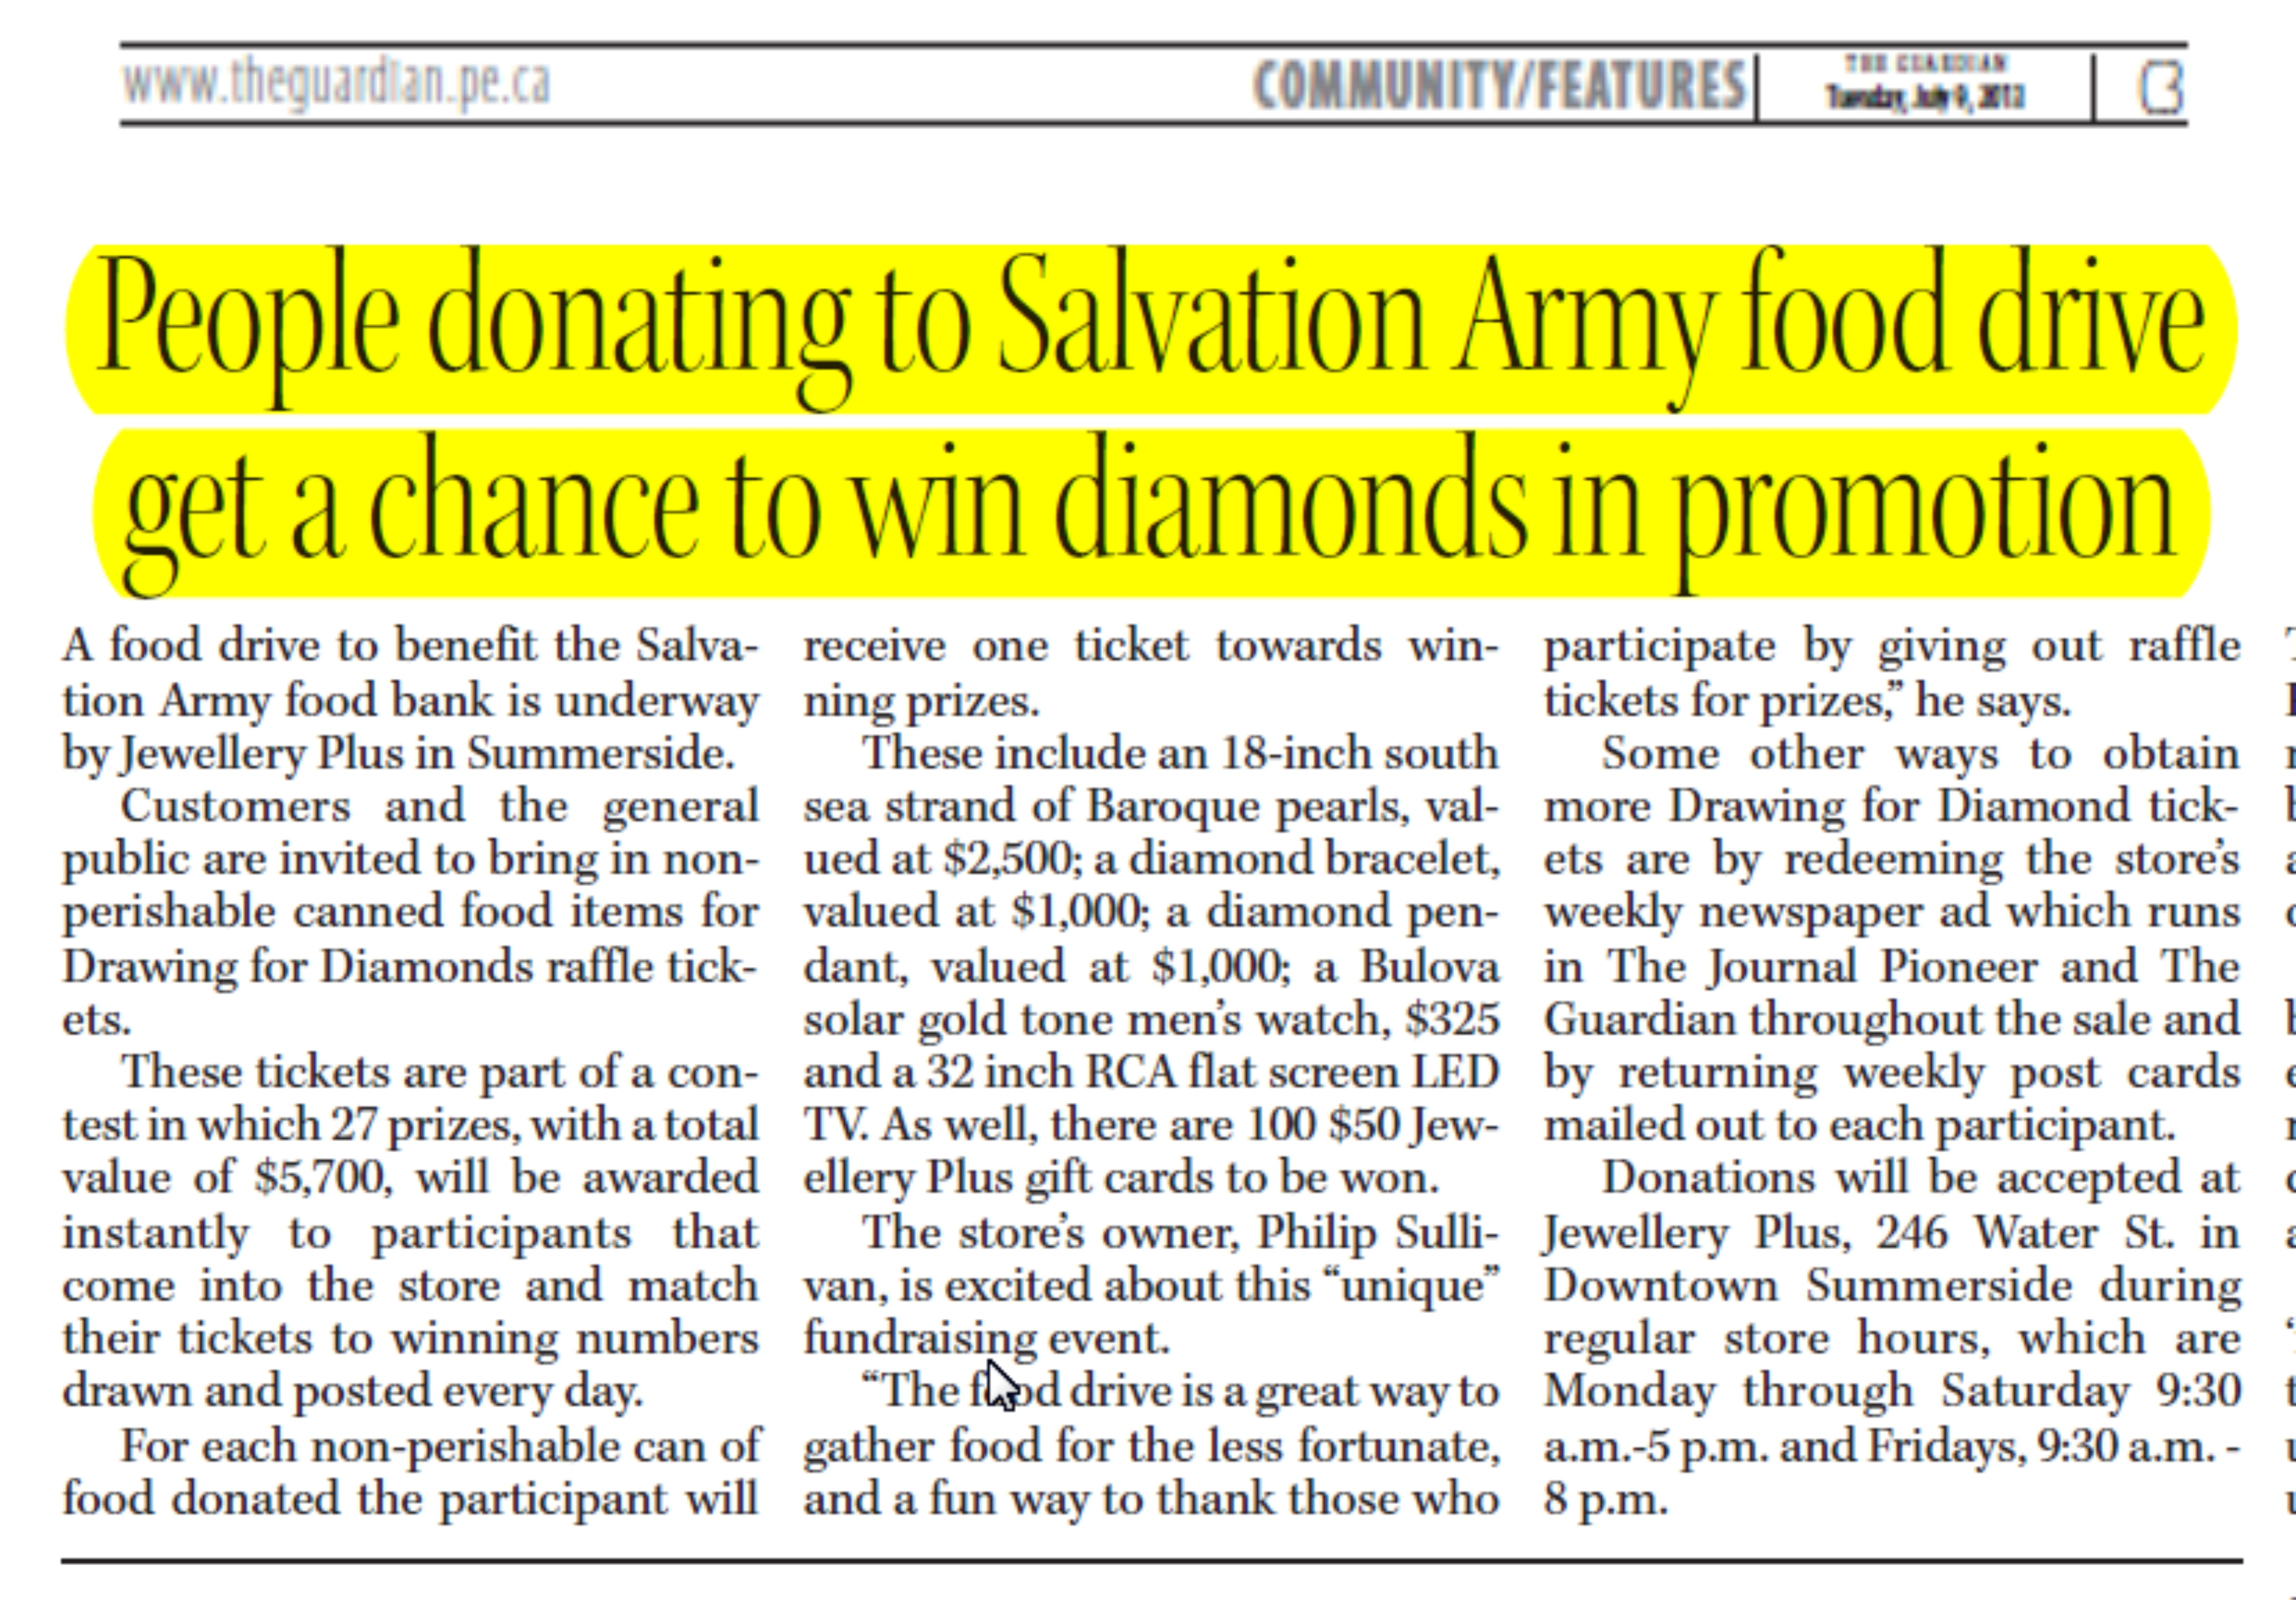 jewellery_plus_food_bank_donation.jpg